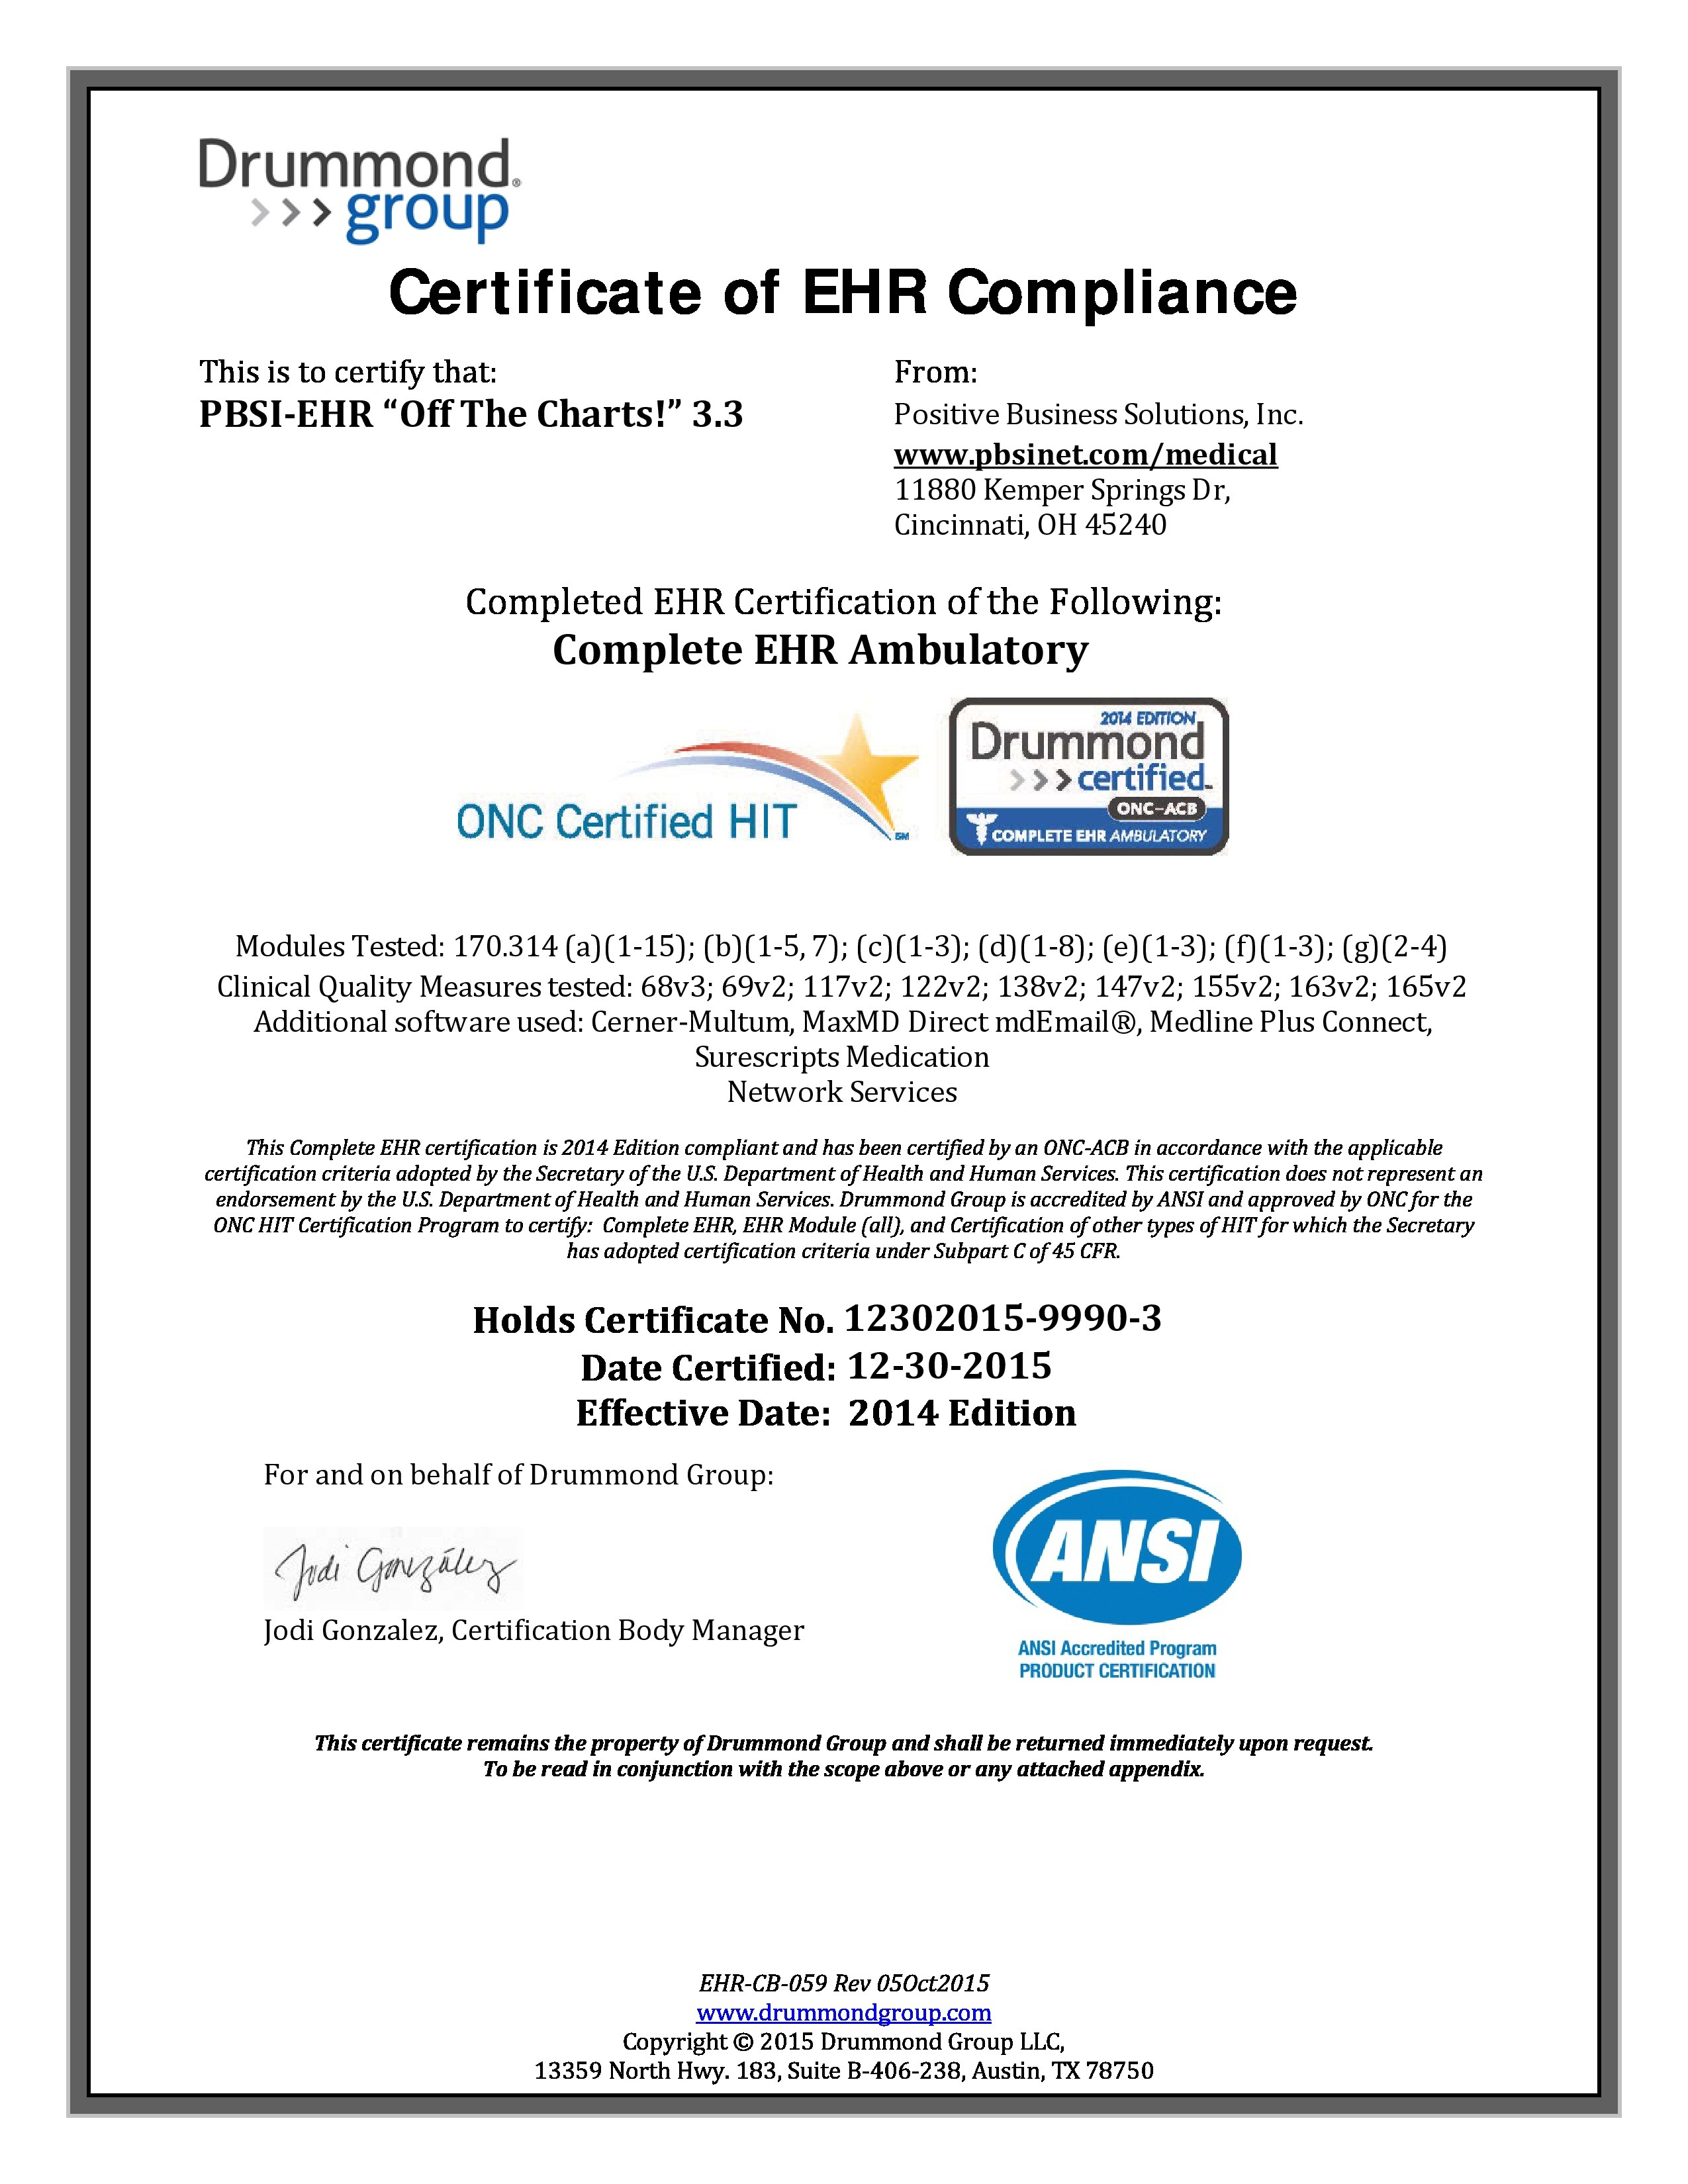 Pbsi positive business solutions medical solutions ehr drummond certified onc atcb 33 xflitez Choice Image